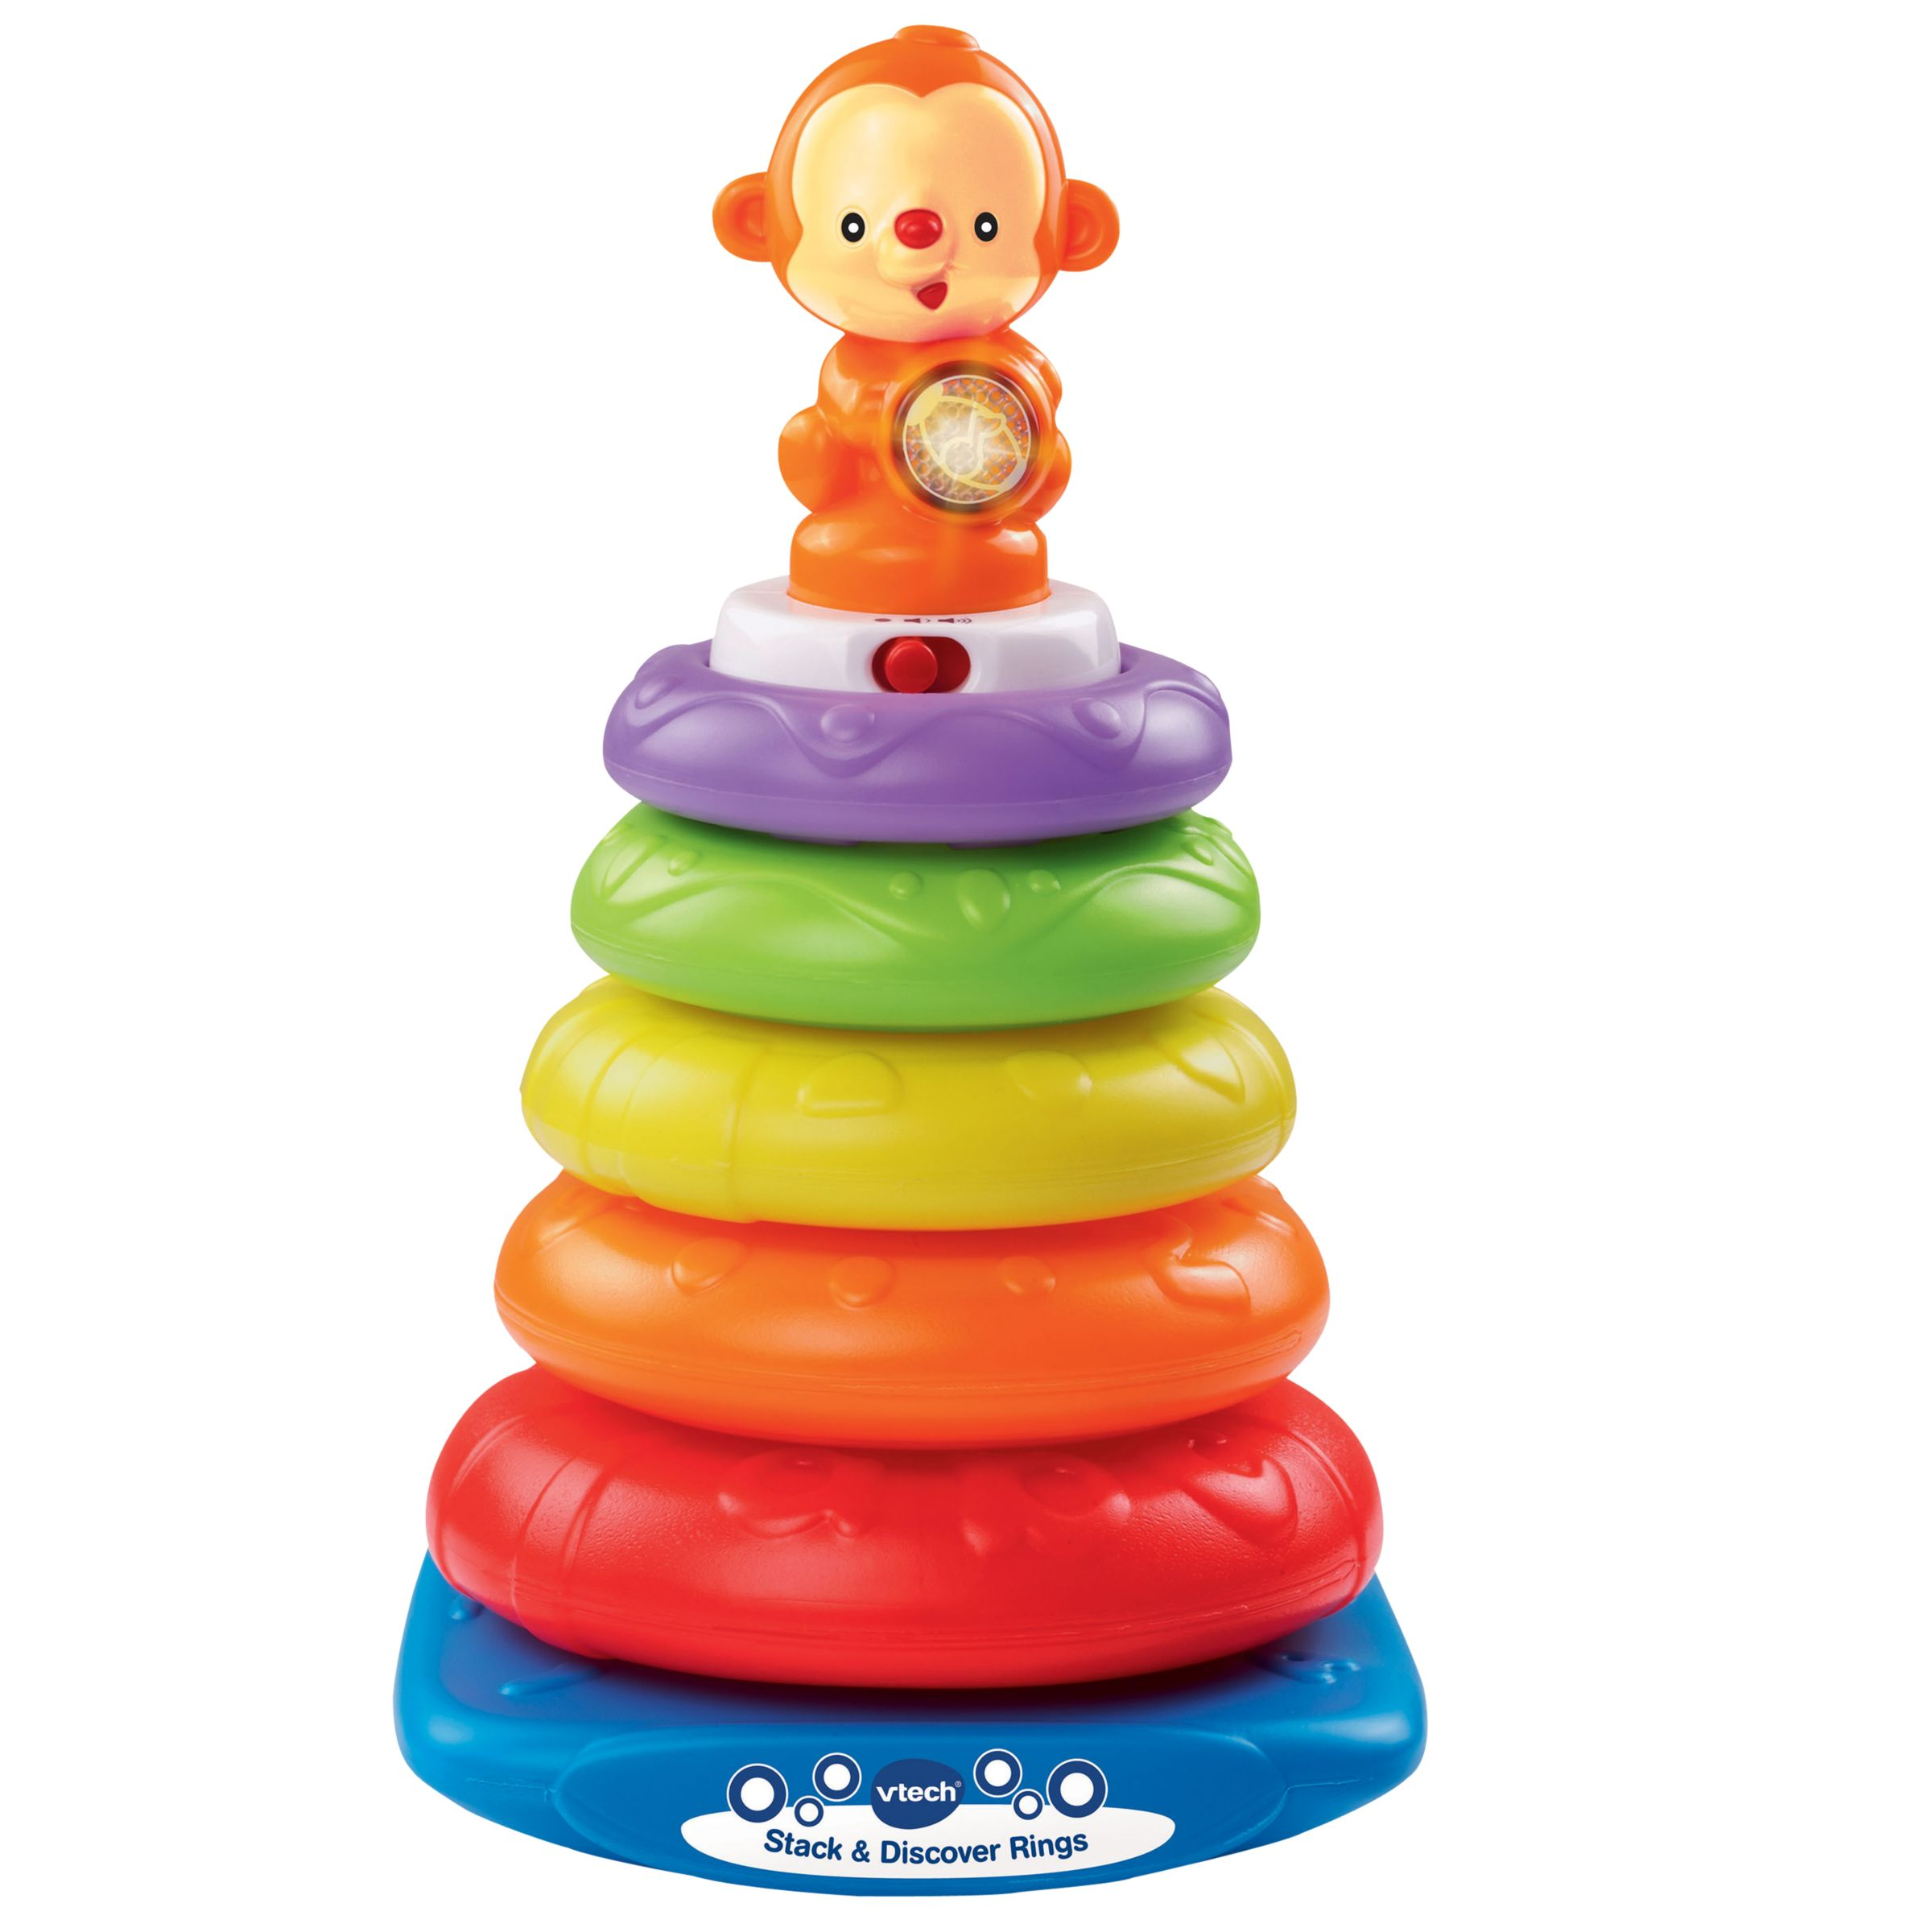 Vtech VTech Stack and Discover Rings Baby Toy